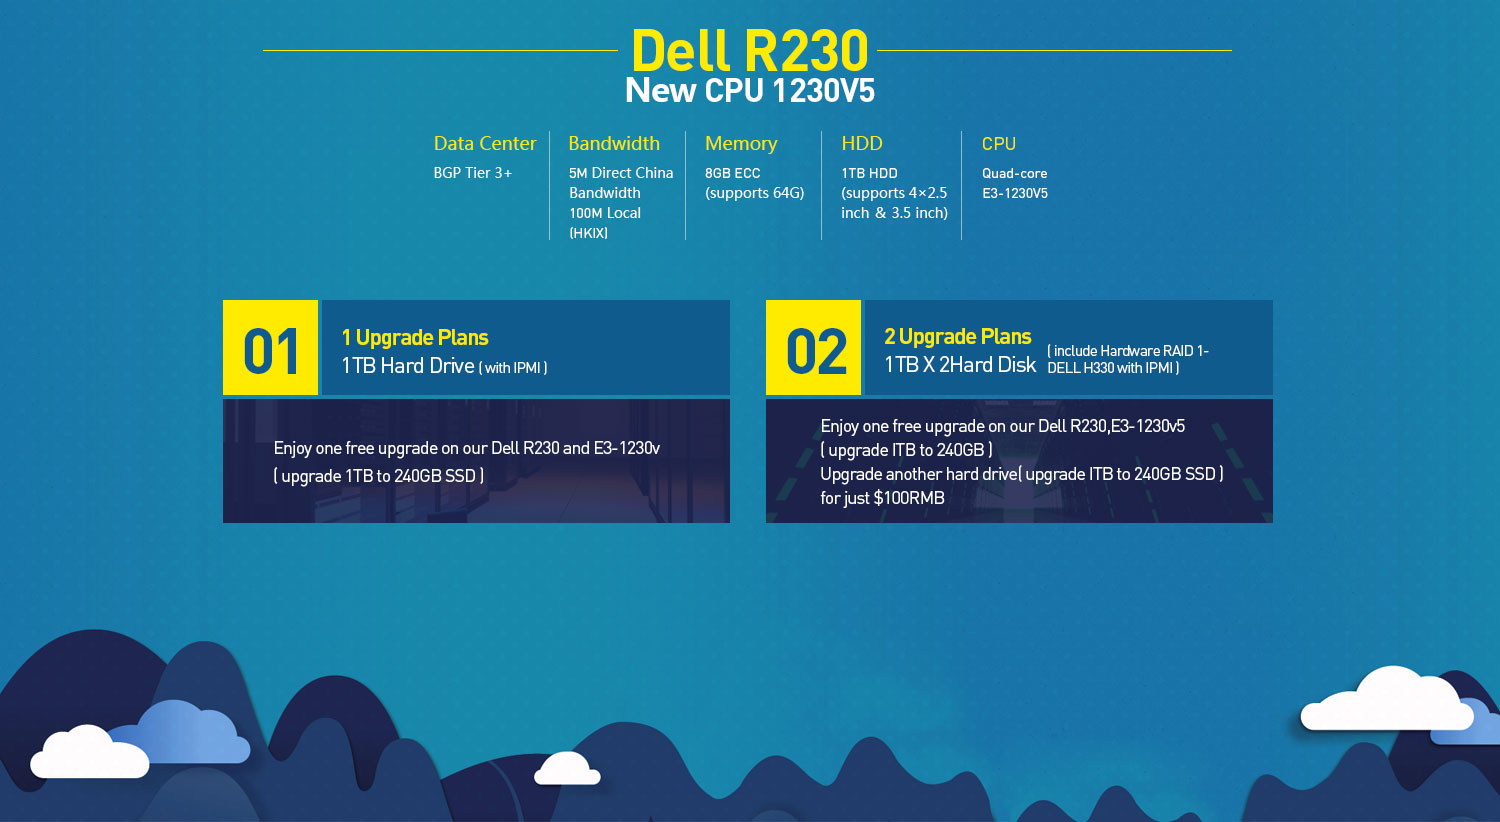 new release, Dell R230, new CPU 1230V5, free upgrade, fastest in HK, new DELL 2016 server, most cost-effective, 50% off limited time offer